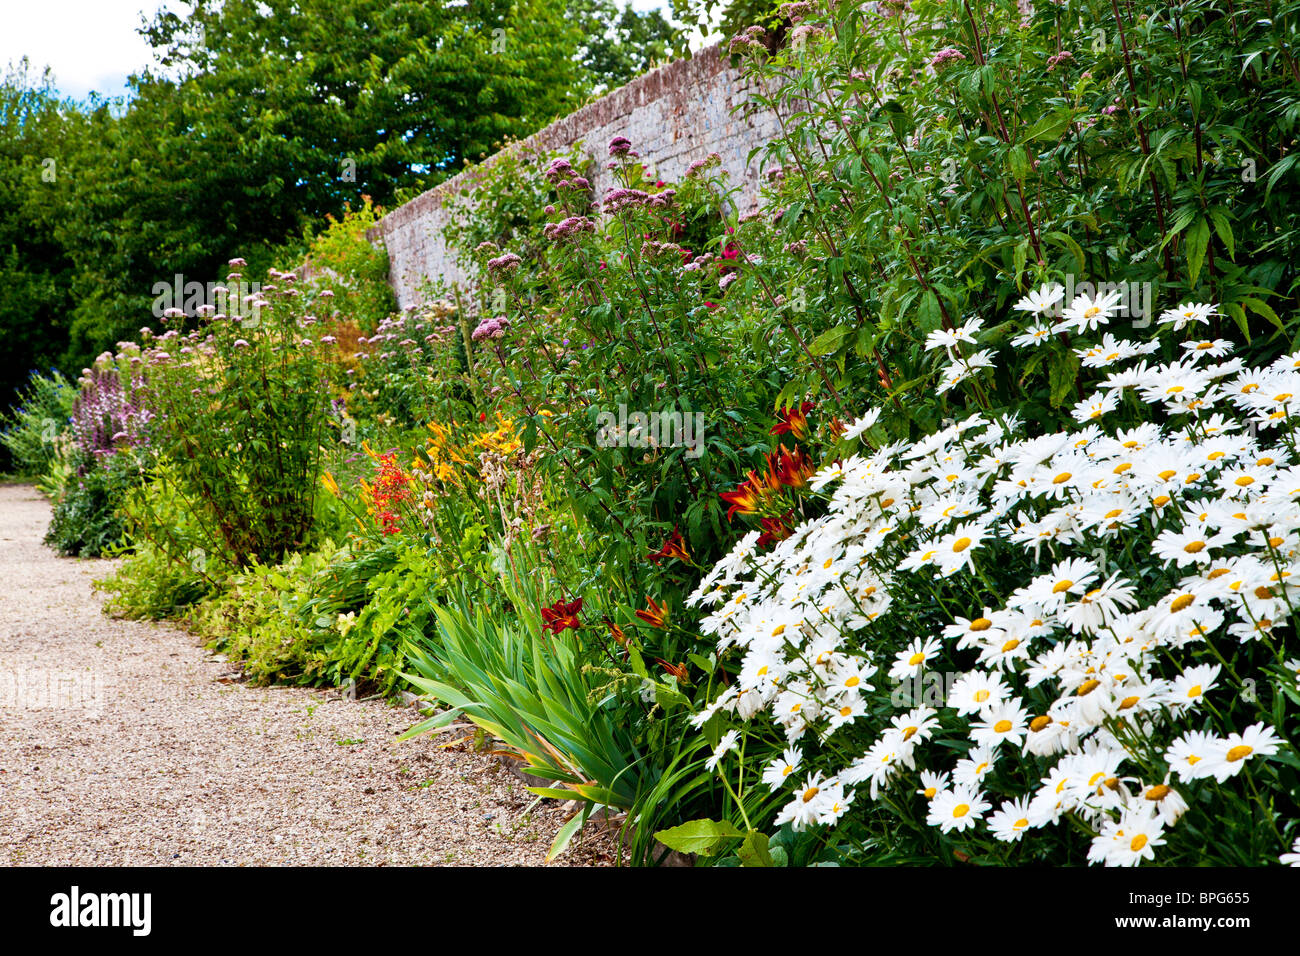 Herbaceous perennial border of summer flowers in a walled english stock photo royalty free - Perennial flowers for borders visual gardens ...